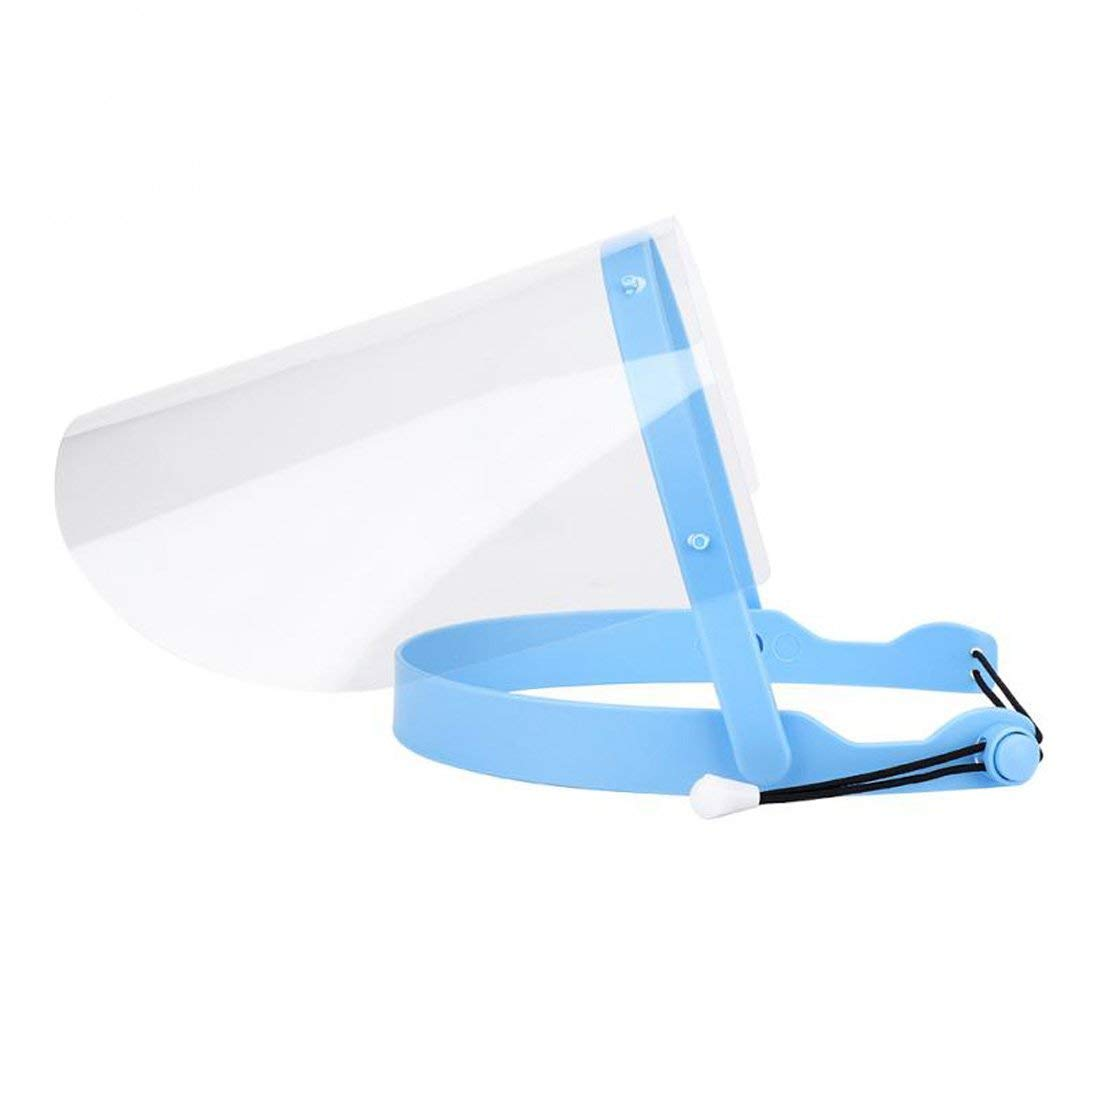 New Adjustable Full Face Shield (2.0) with 10 Plastic Protective Film by Pwhite